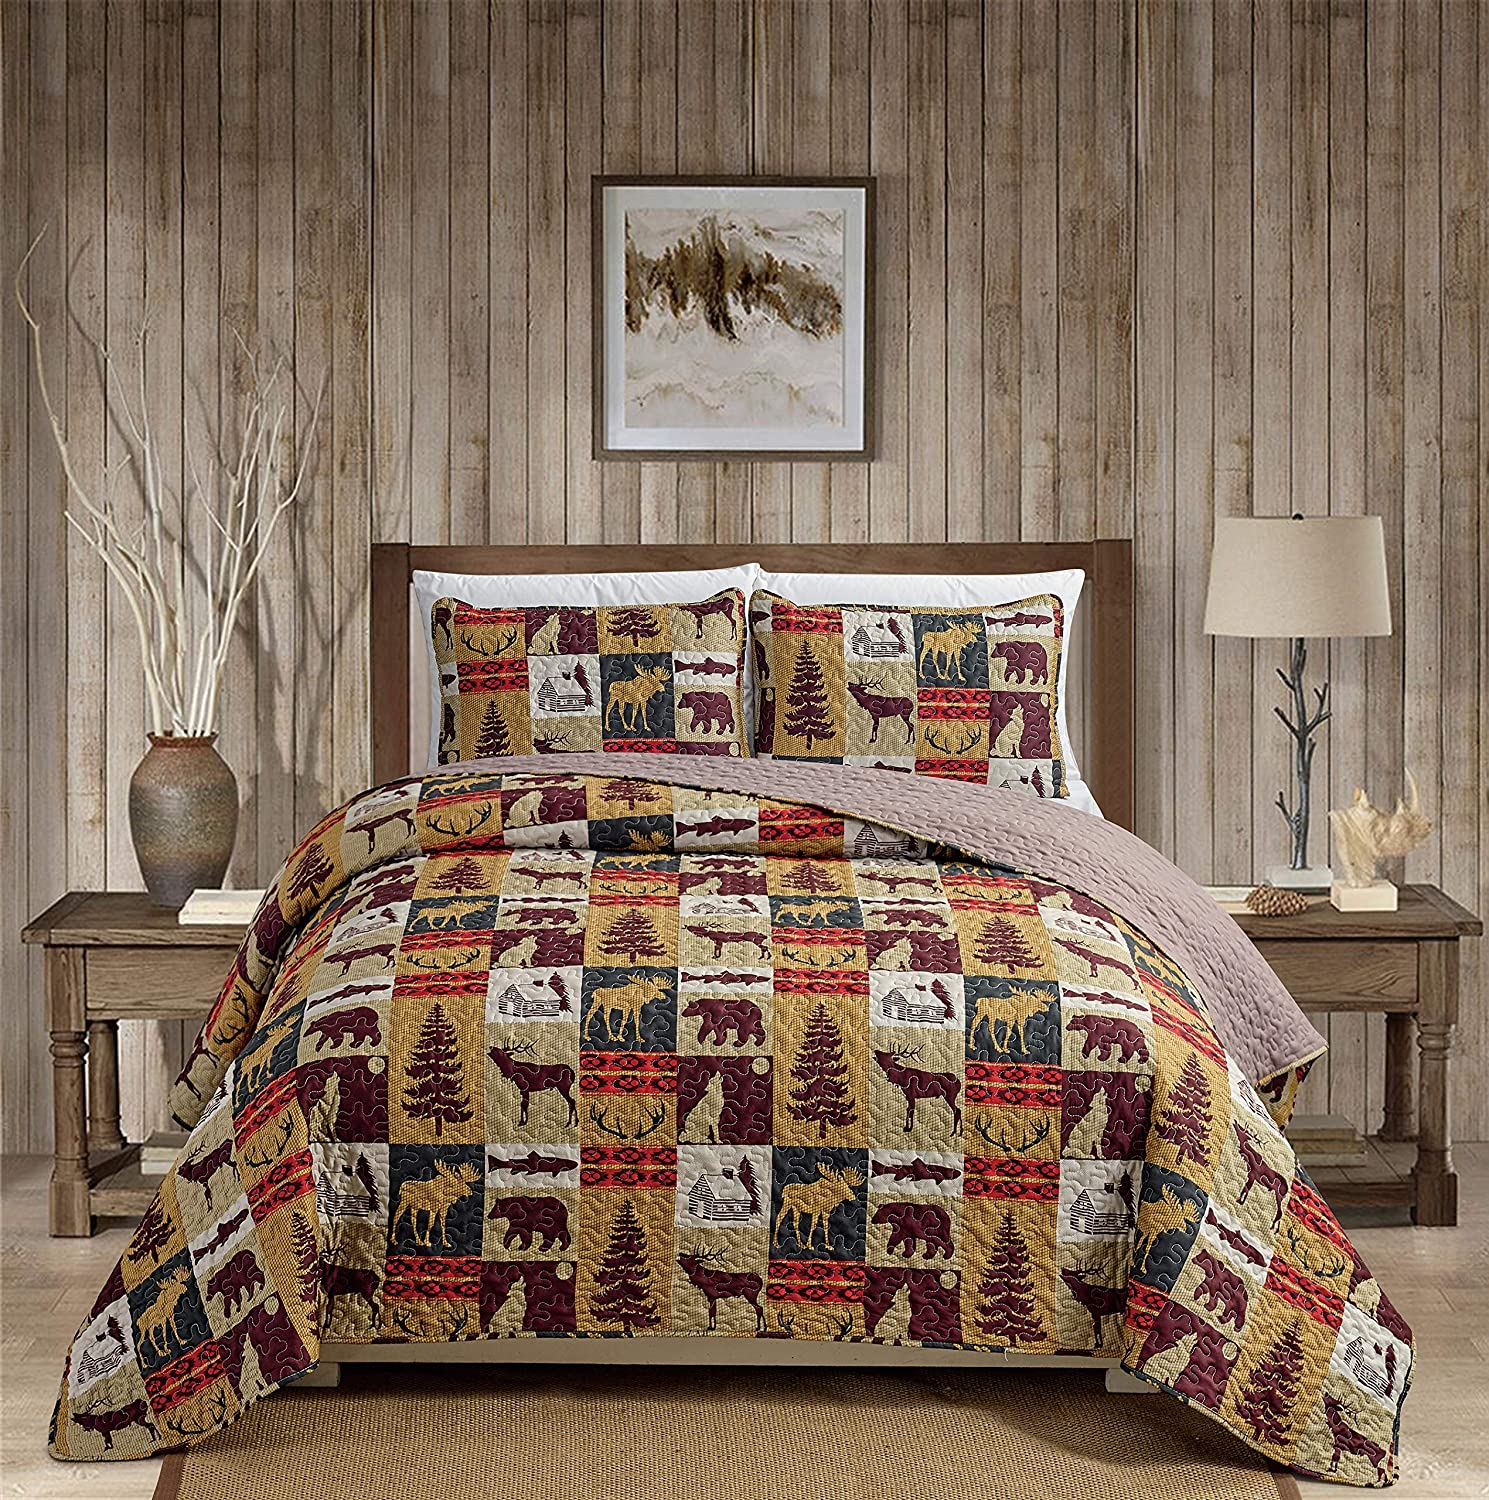 Rugs 4 Less Rustic Cabin Lodge Quilt Stitched Bedspread Coverlet Bedding Set with Patchwork of Wildlife Moose Grizzly Bears Deer Buck Antlers and Tribal Southwest Patterns - Western 3 (Twin)